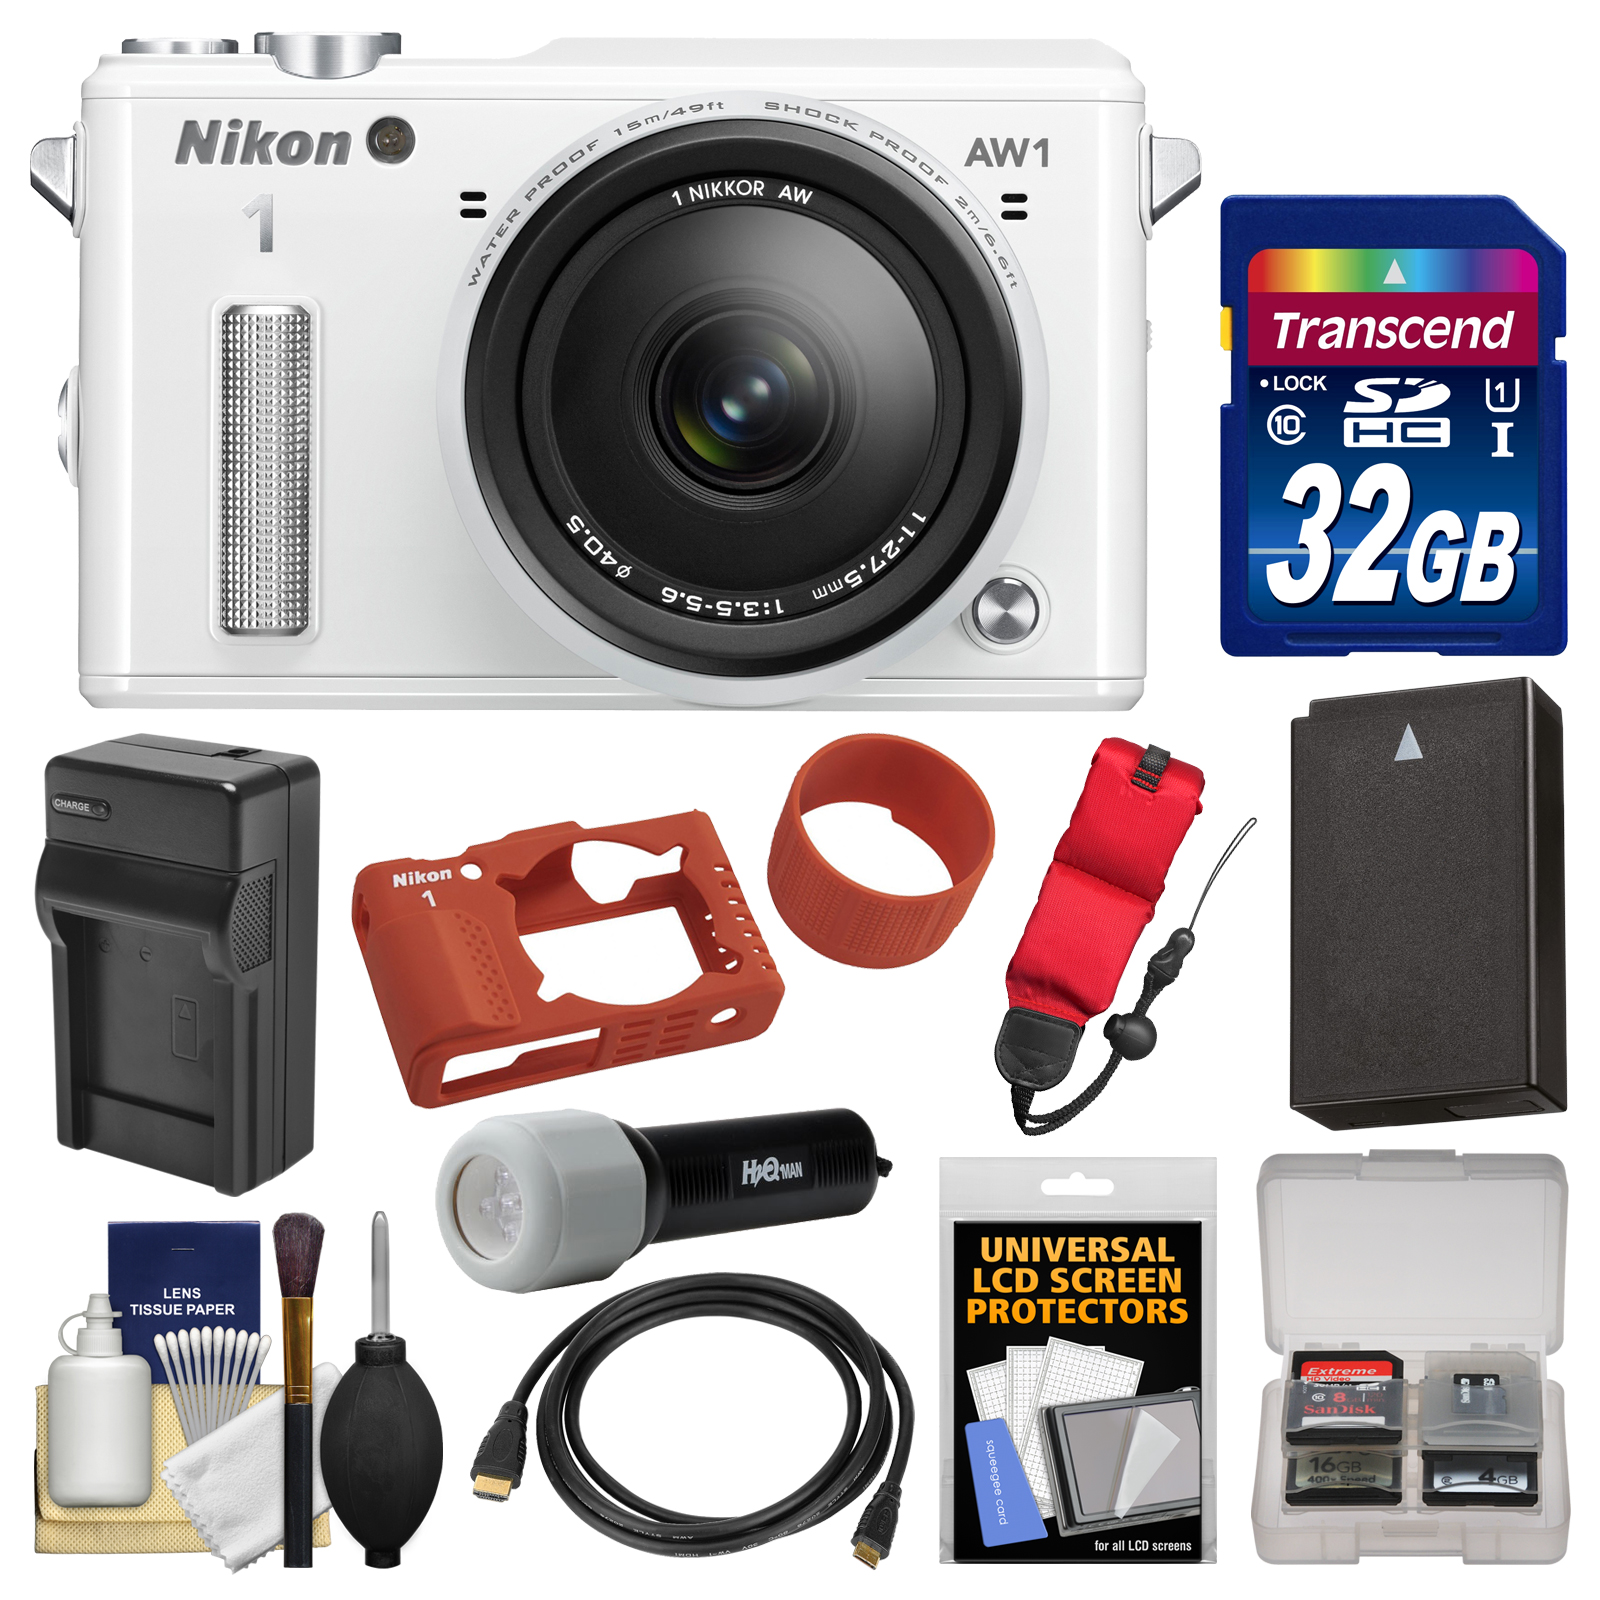 Nikon 1 AW1 Shock & Waterproof Digital Camera Body with AW 11-27.5mm Lens (White) with 32GB Card + Silicone Case + Battery & Charger + LED Torch + Kit